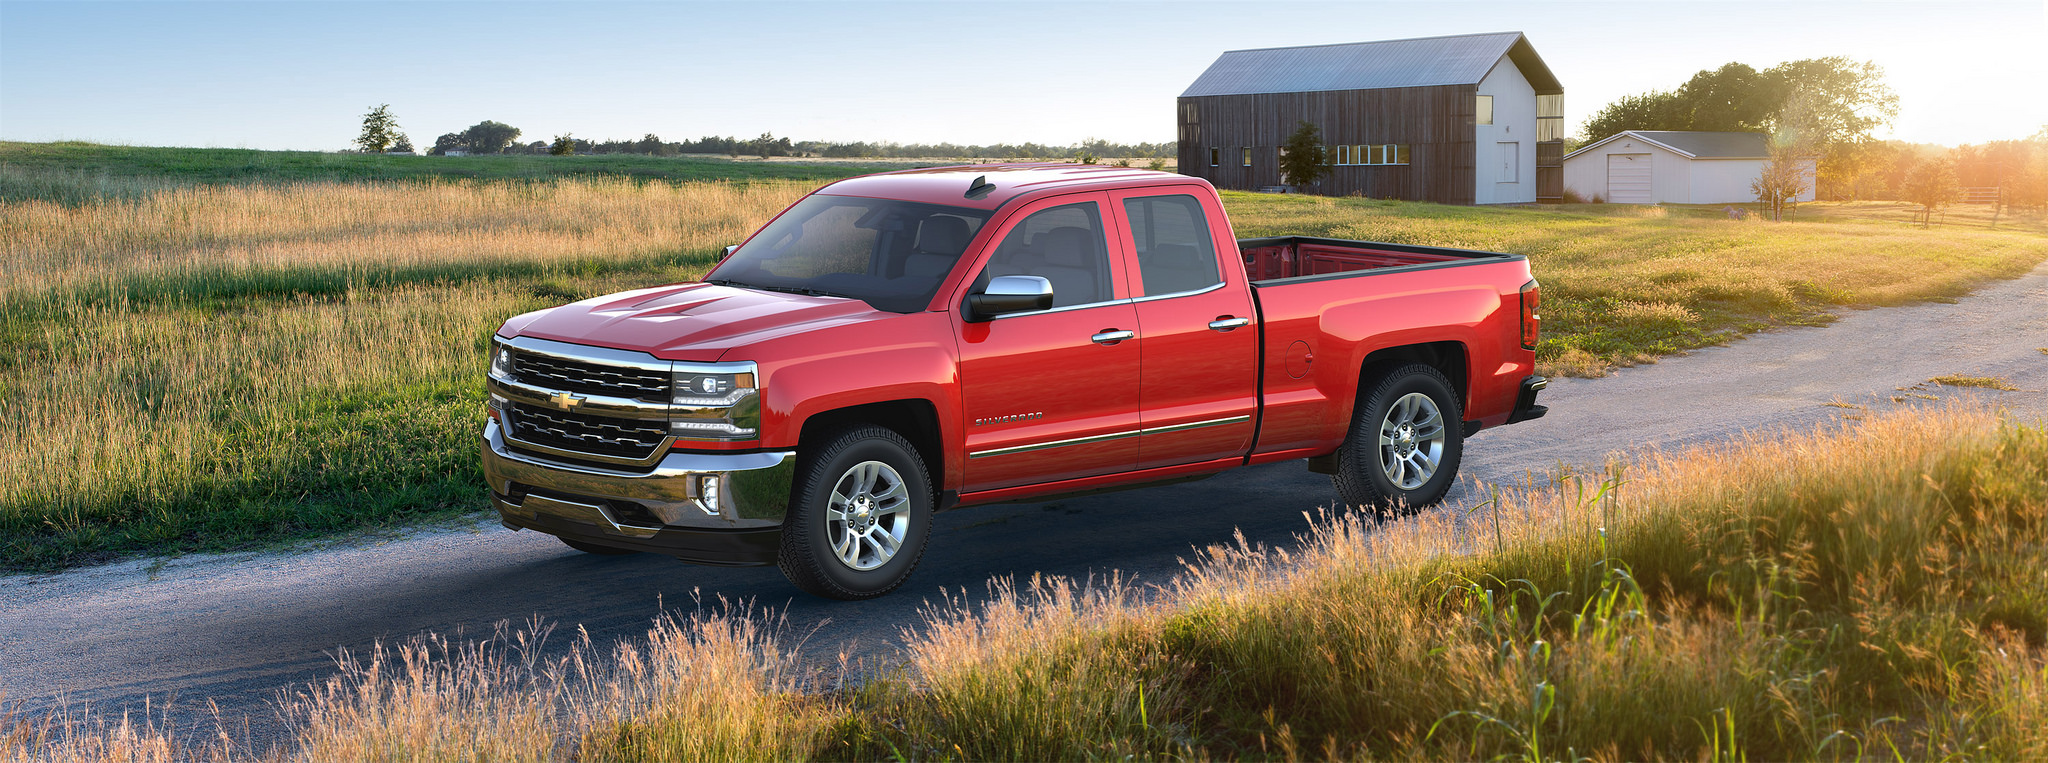 2016 Chevrolet Silverado 1500 at Carter Chervolet in Okarche OK